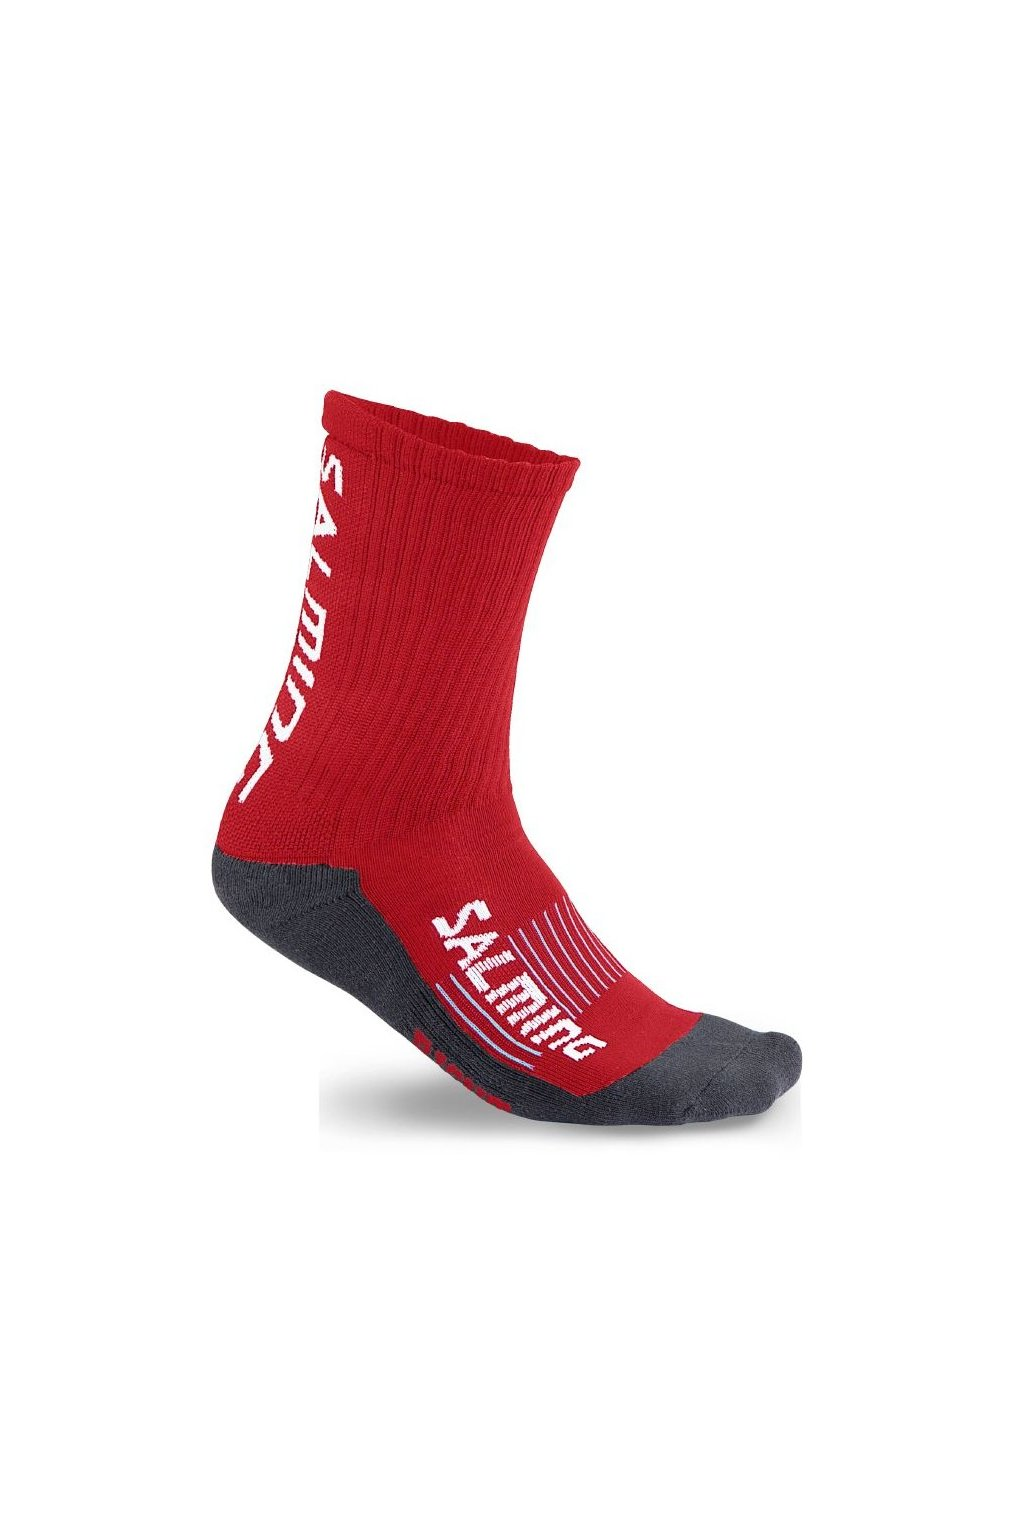 salming advanced indoor sock (2)